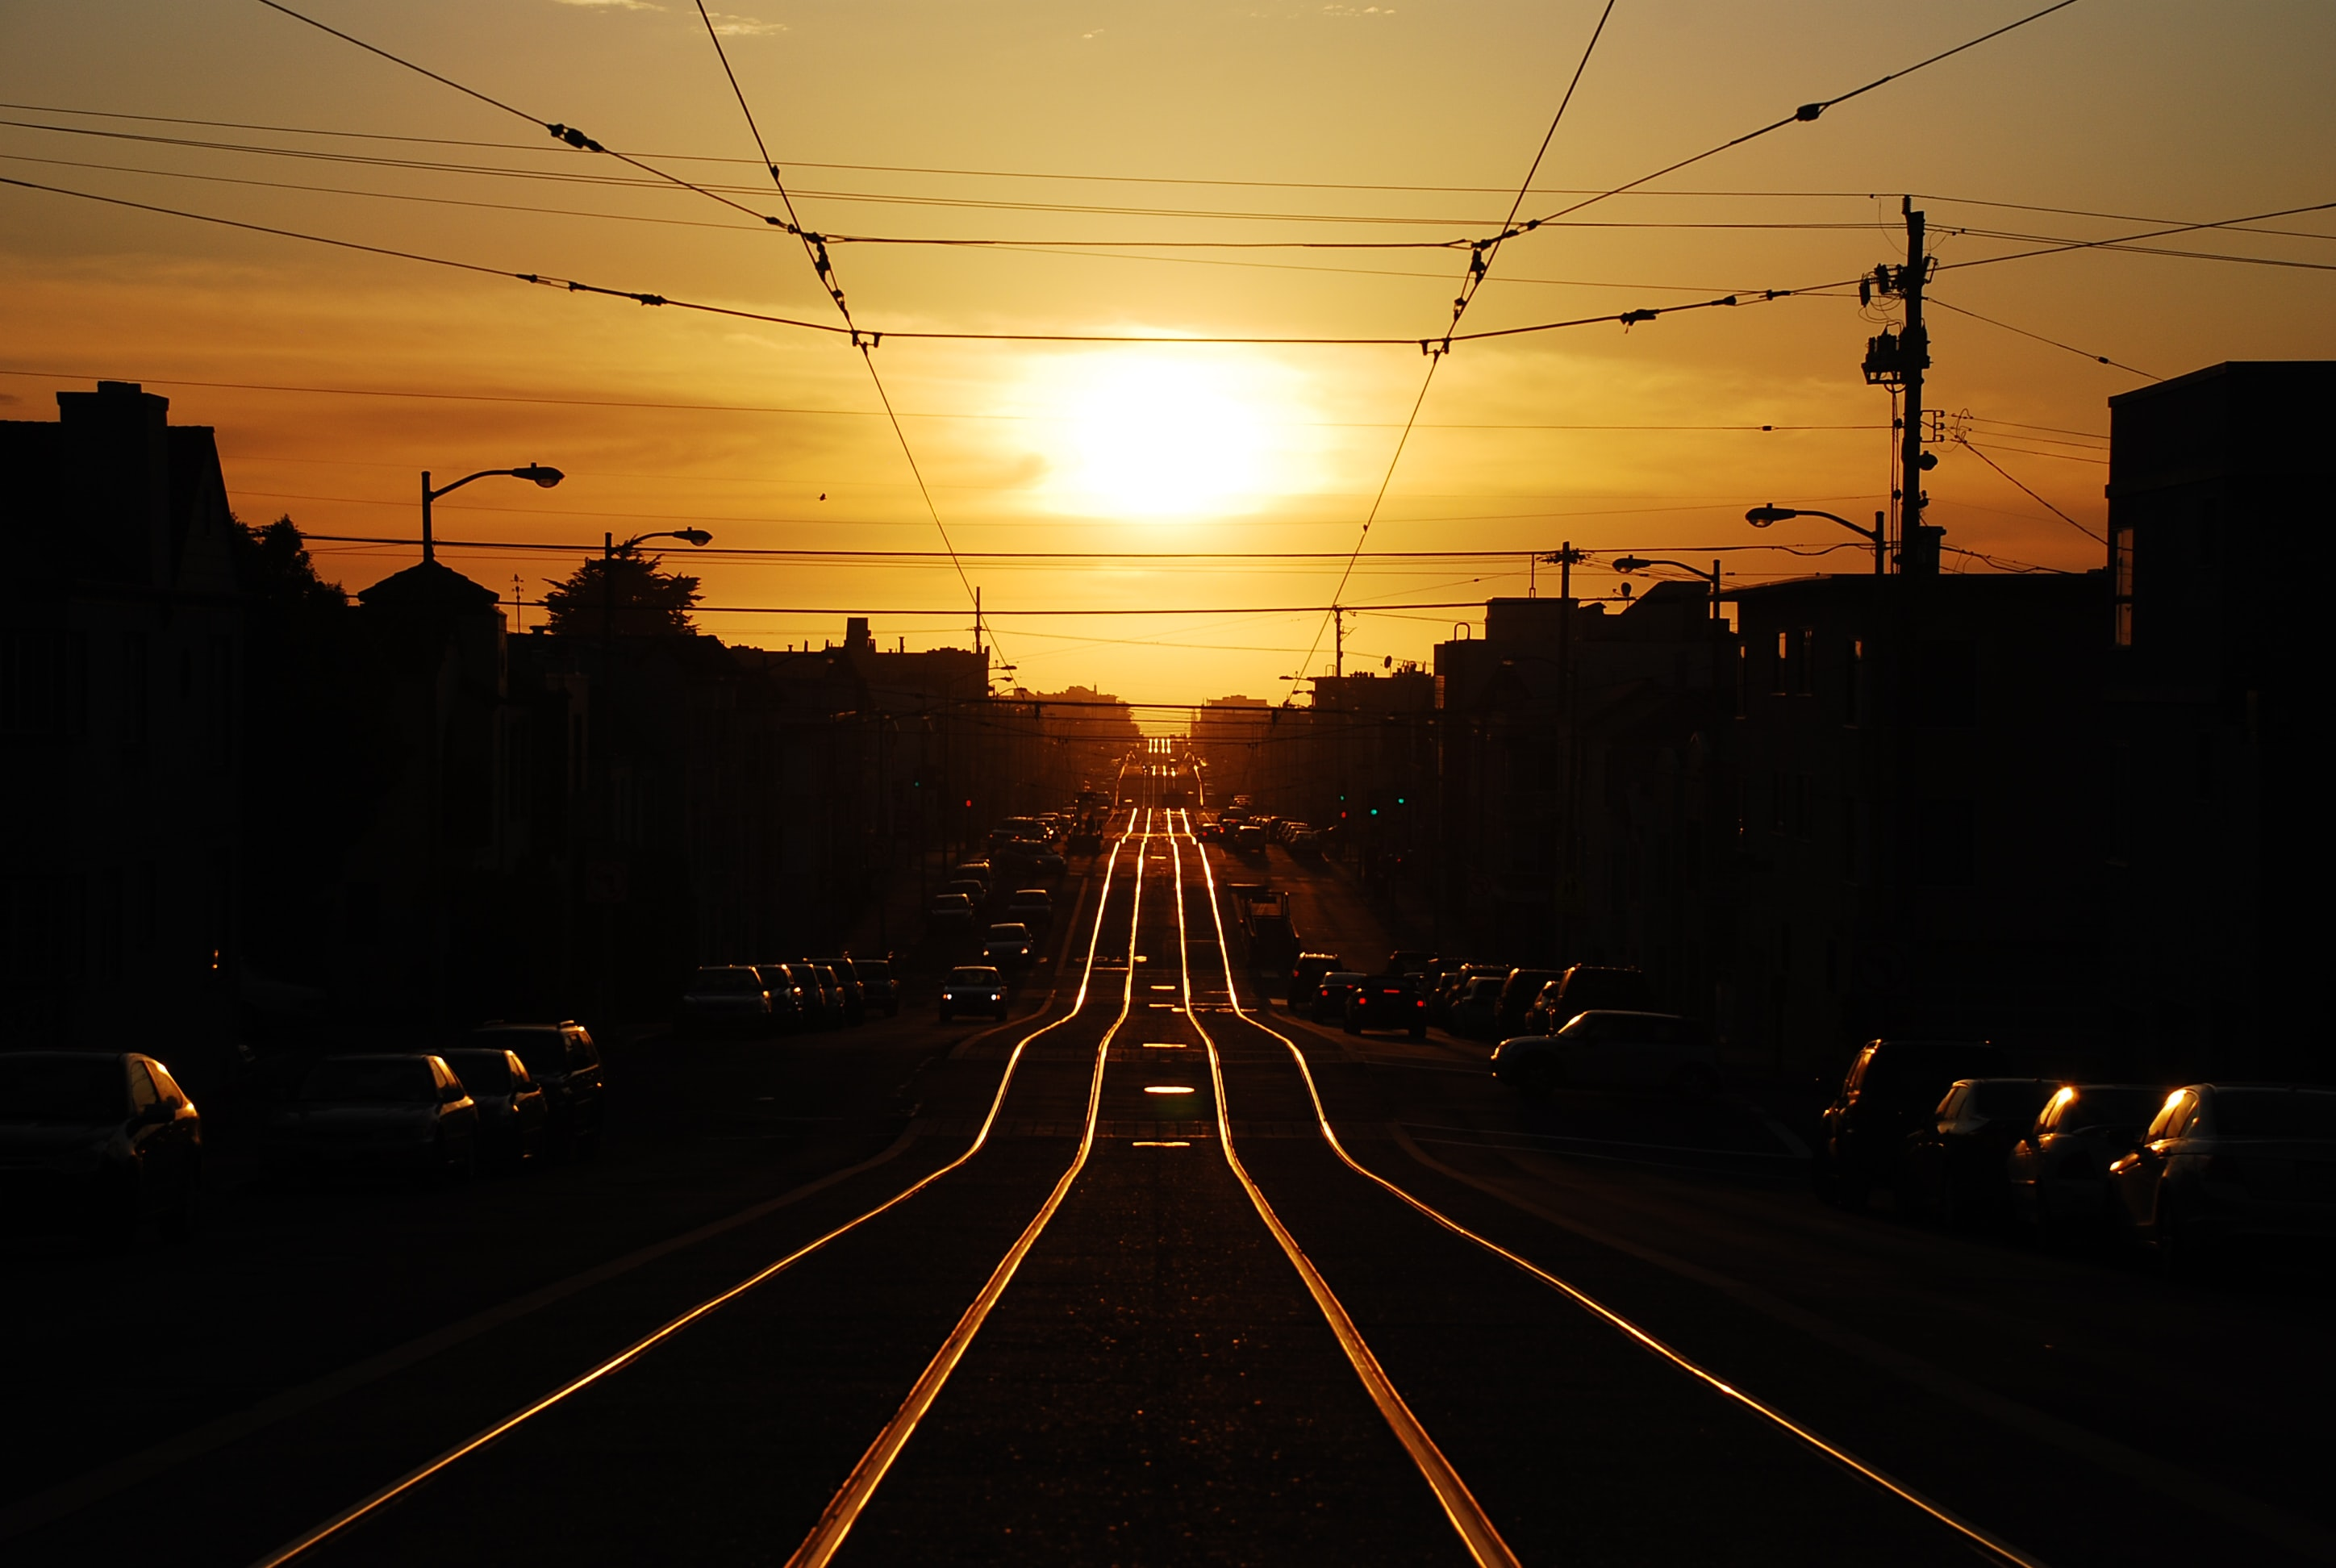 Sunset along the trolly track in San Francisco's Inner Sunset neighborhood